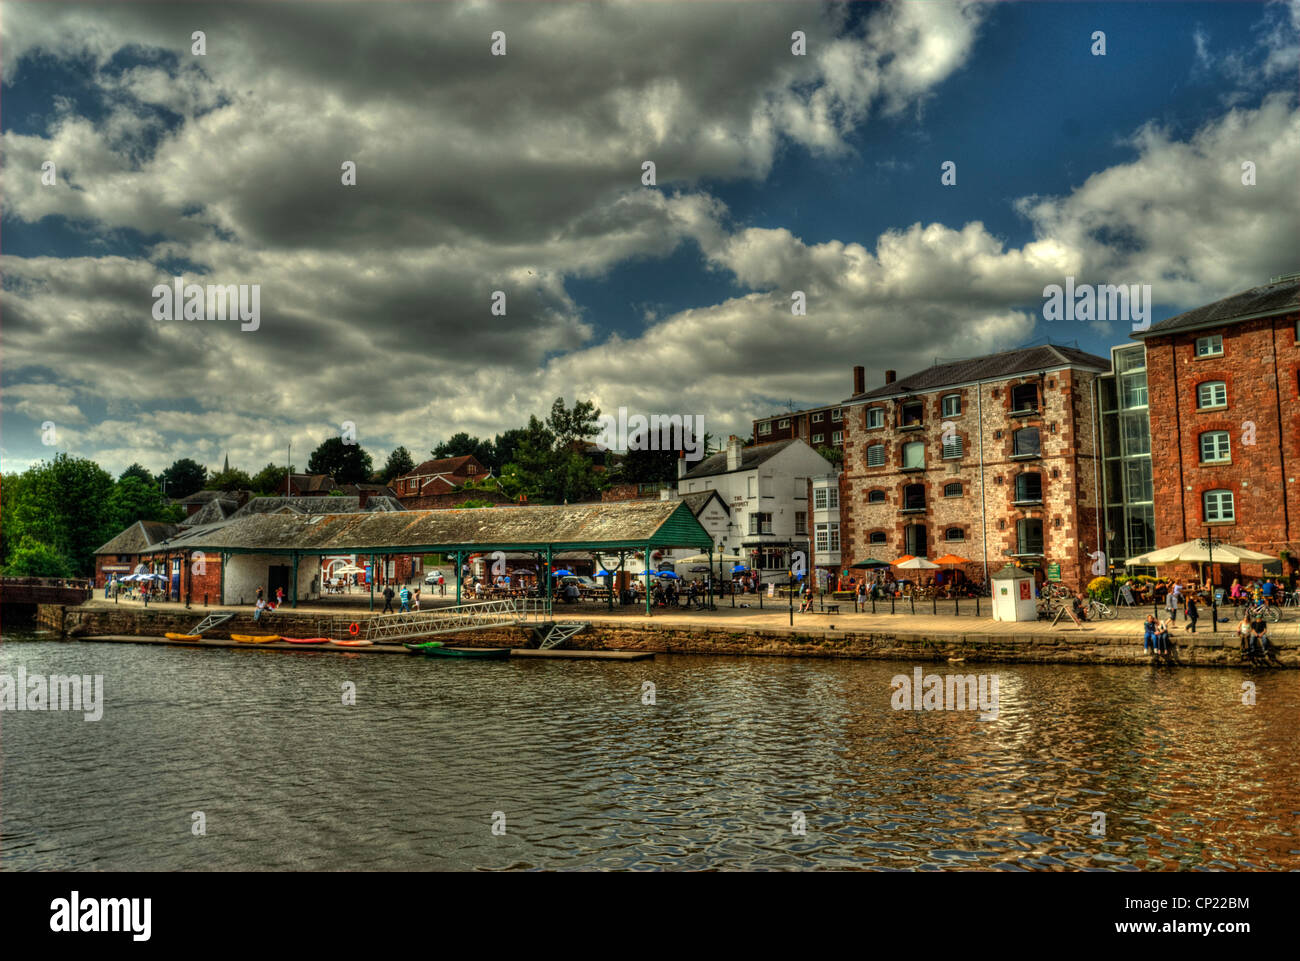 Exeter Historic quayside with the old fish market, Prospect Inn, Mangos Cafe and The Waterfront Bar. - Stock Image